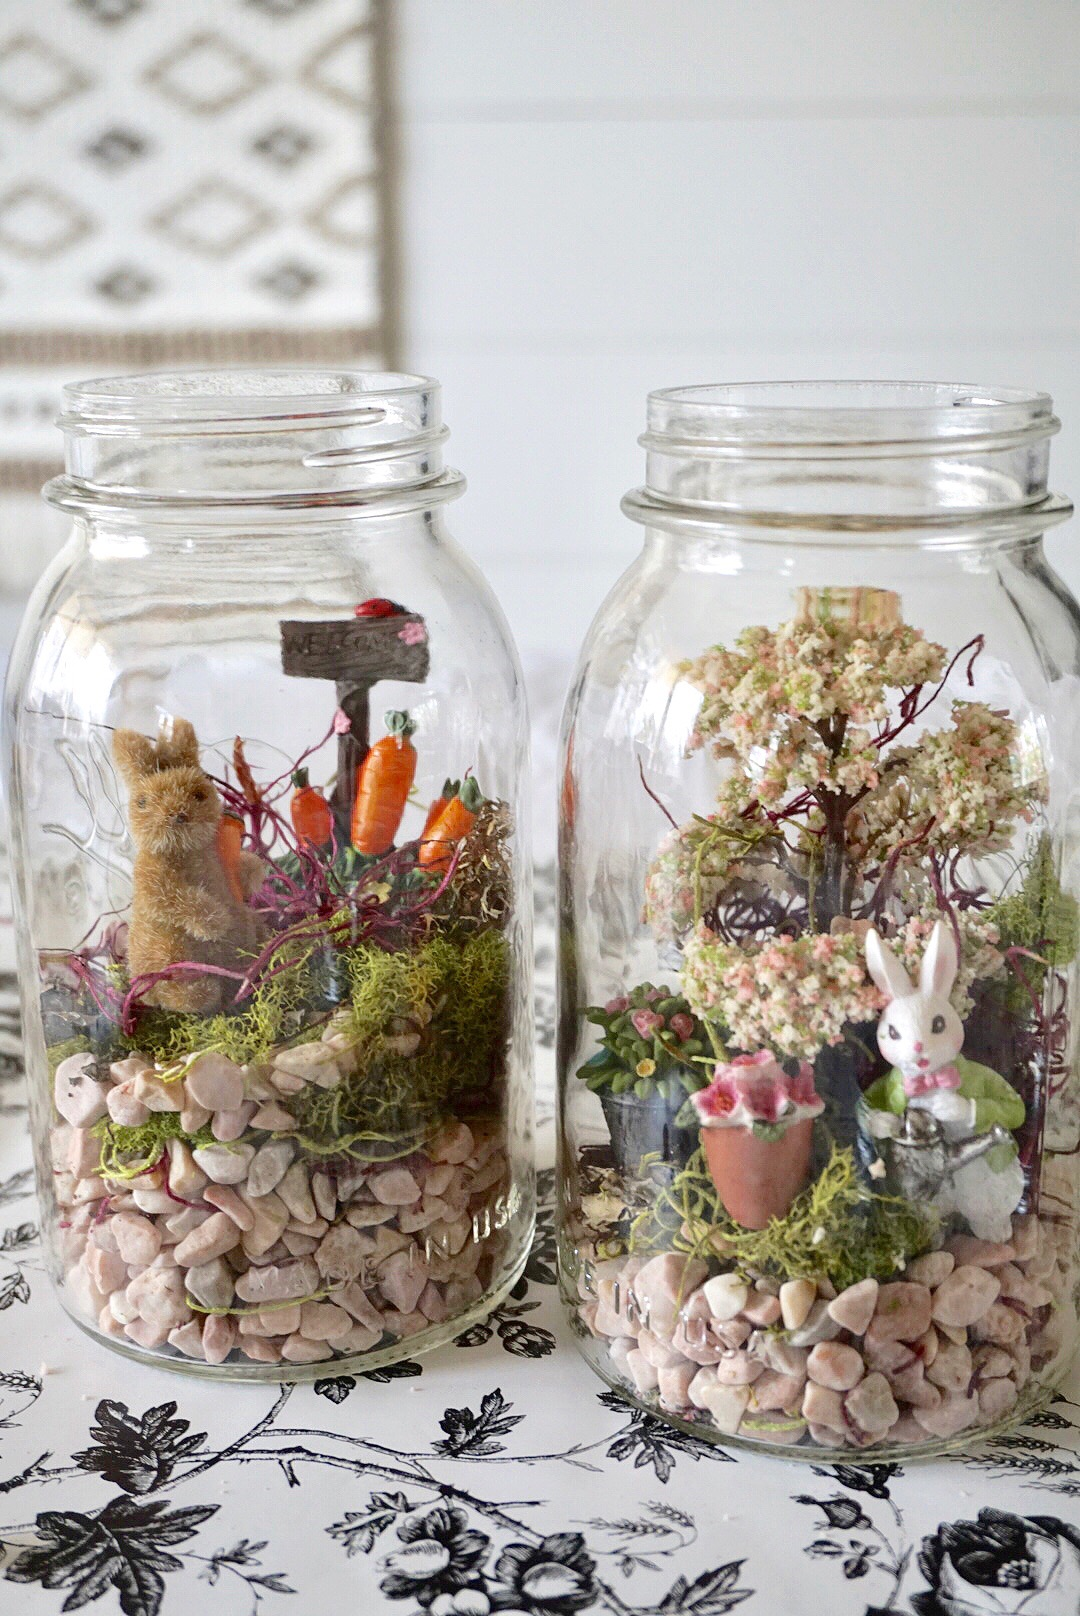 Hop To It A Diy Mason Jar Easter Fairy Garden Terrarium Legally Crafty Blog